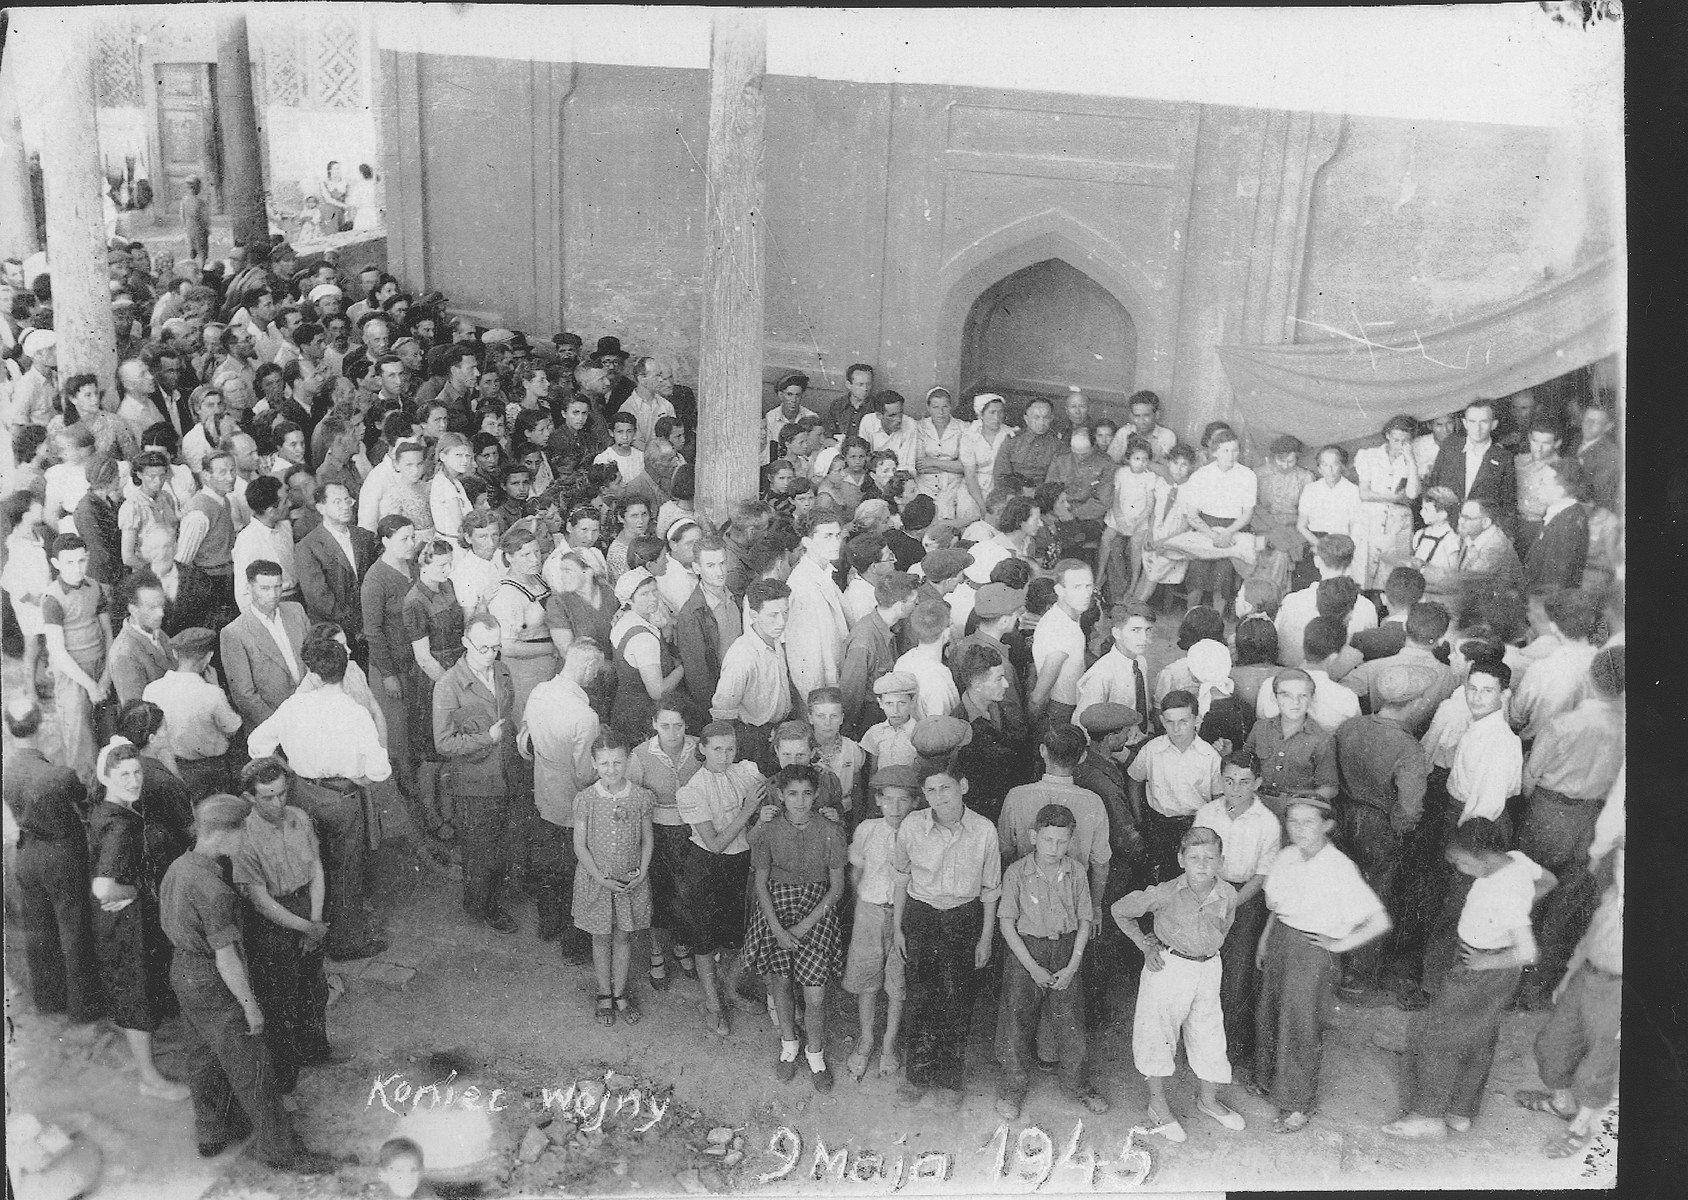 Jewish refugees who had fled to Bukhara during the war, gather for a general meeting on the day after VE Day.